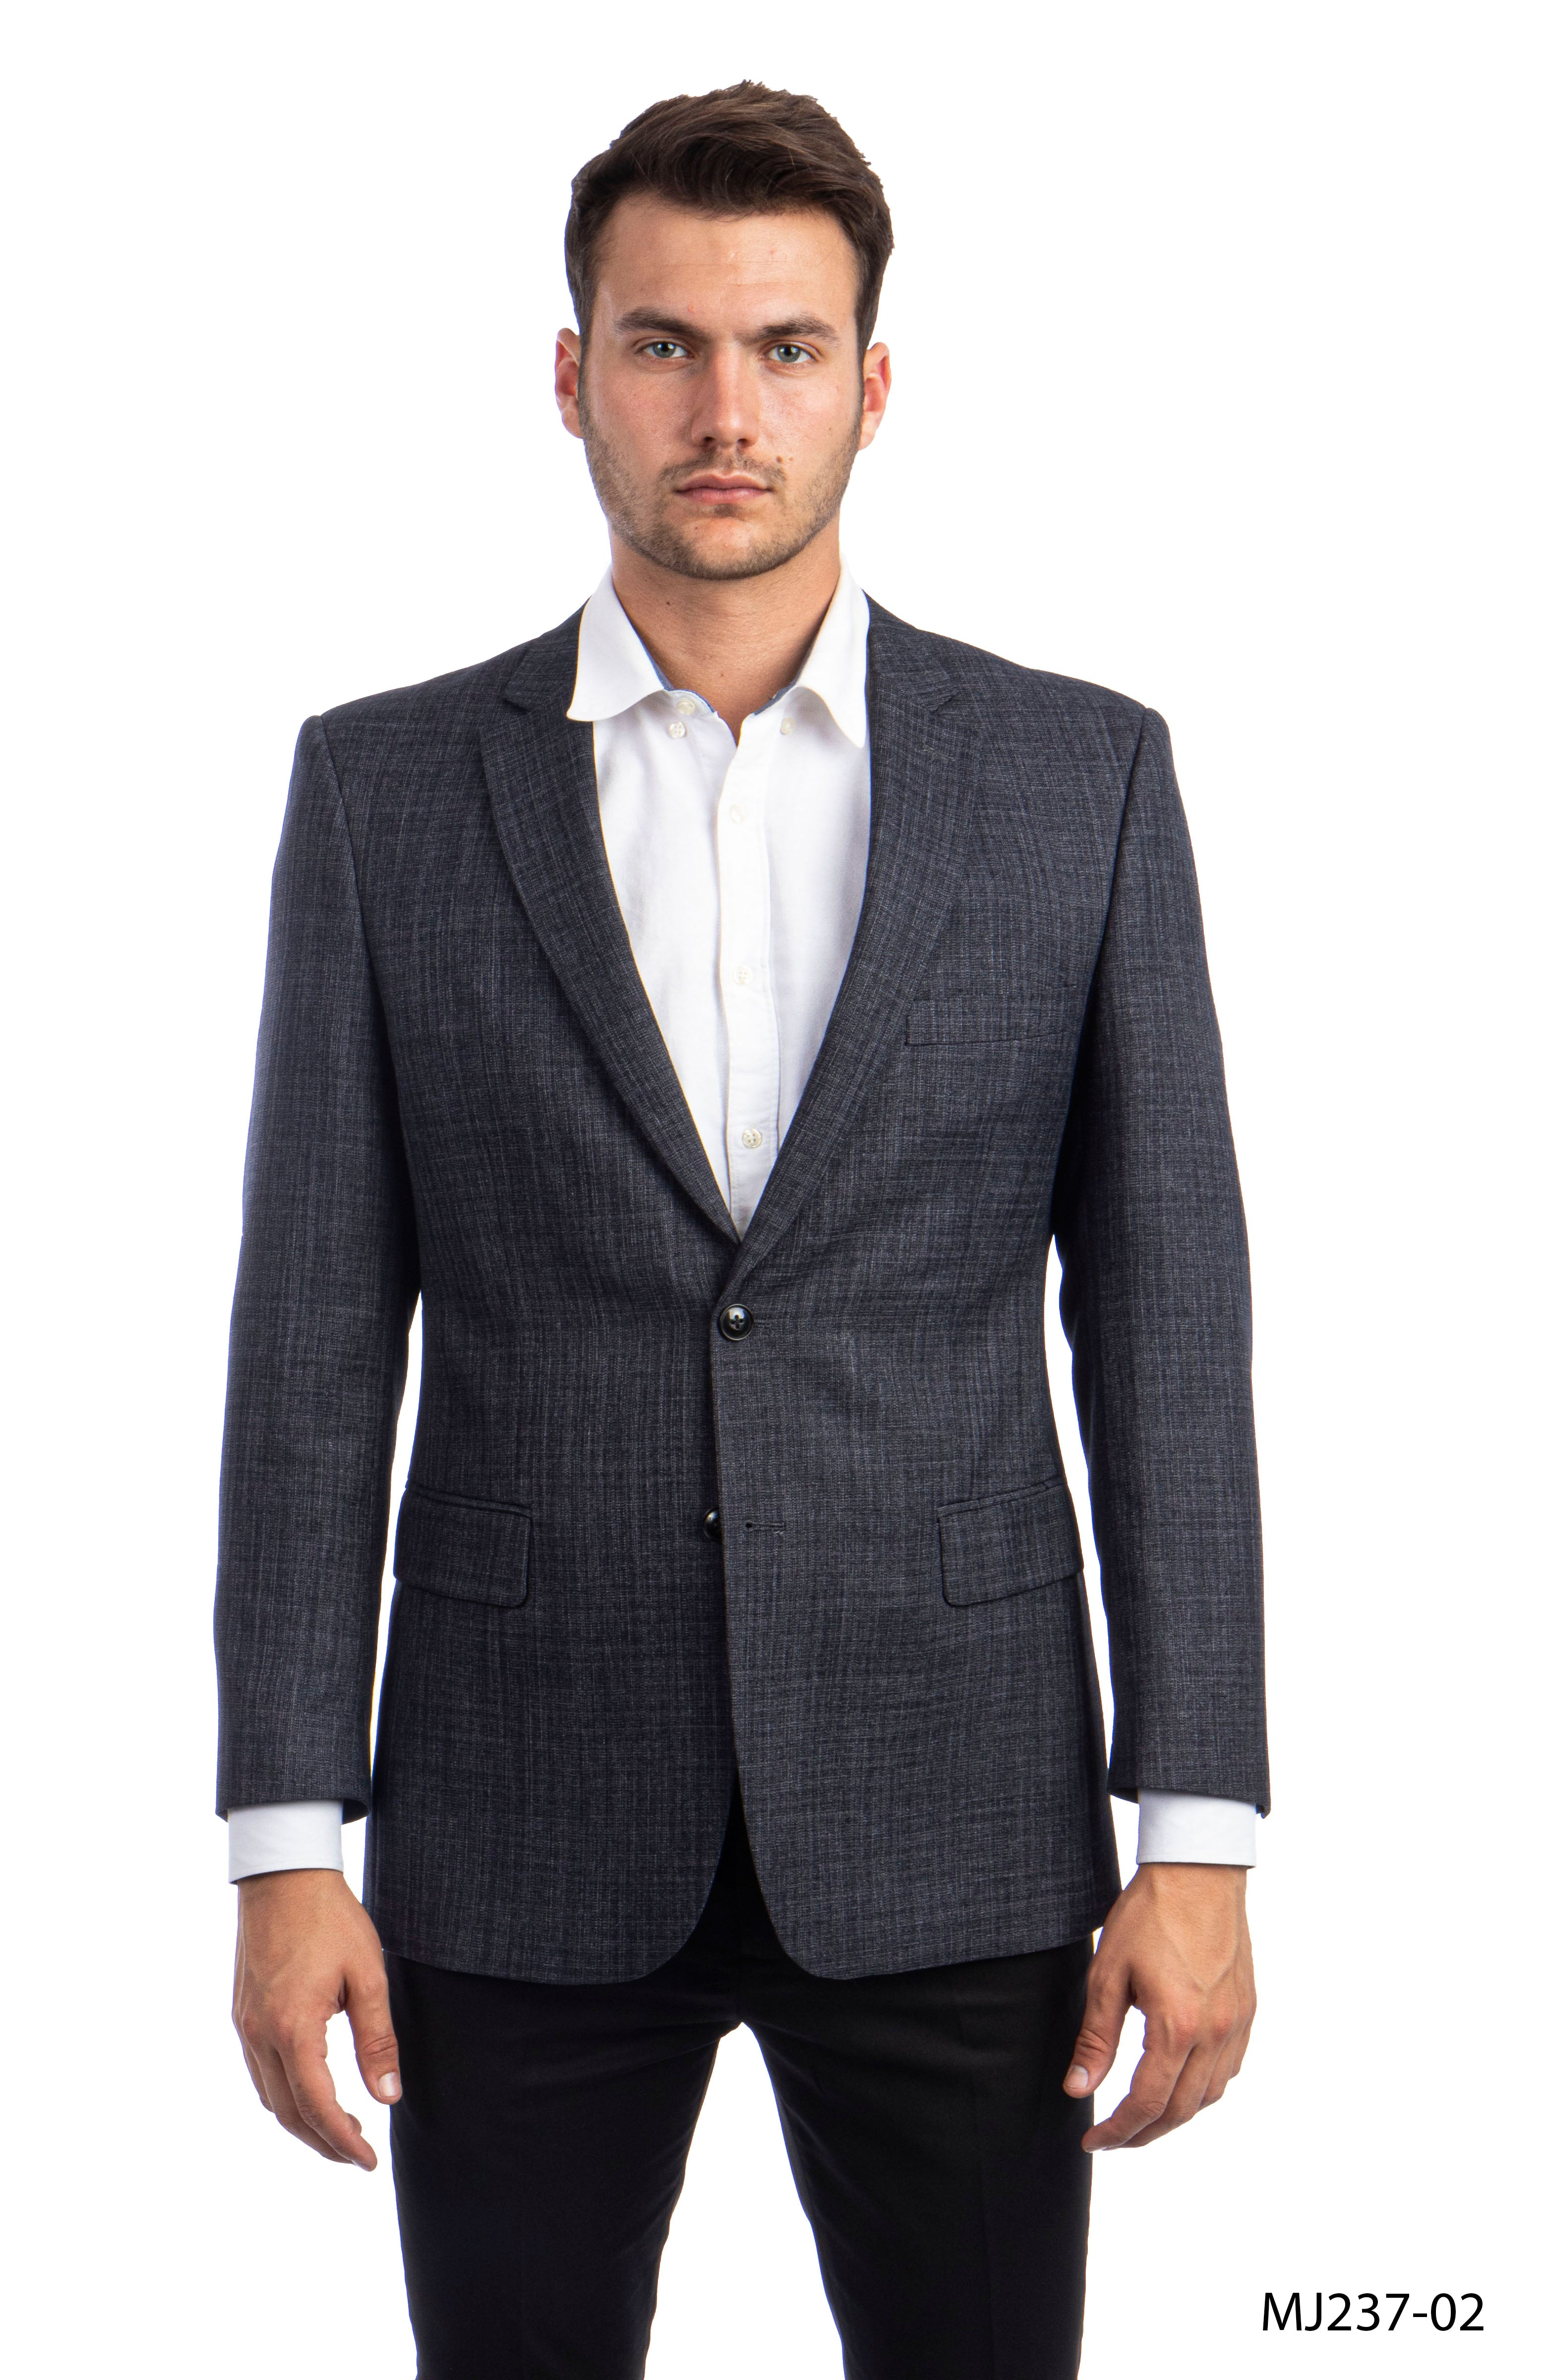 Black Charcoal Tazio Sports Coat Dinner Jackets